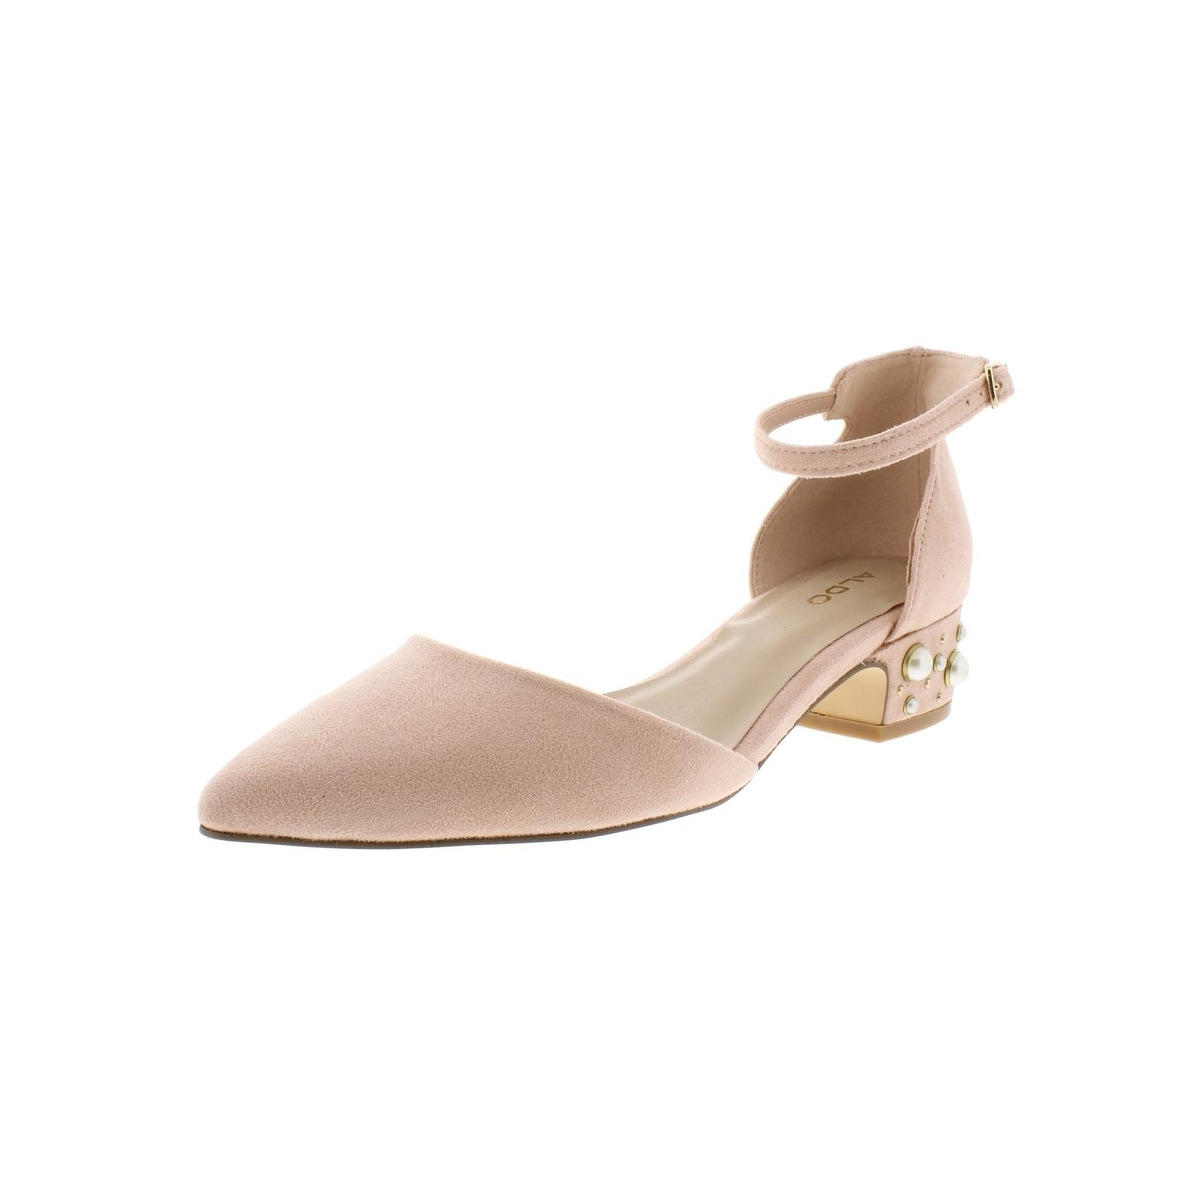 40cd2ccfc1b9 Buy Aldo Women s Heels Online at Overstock